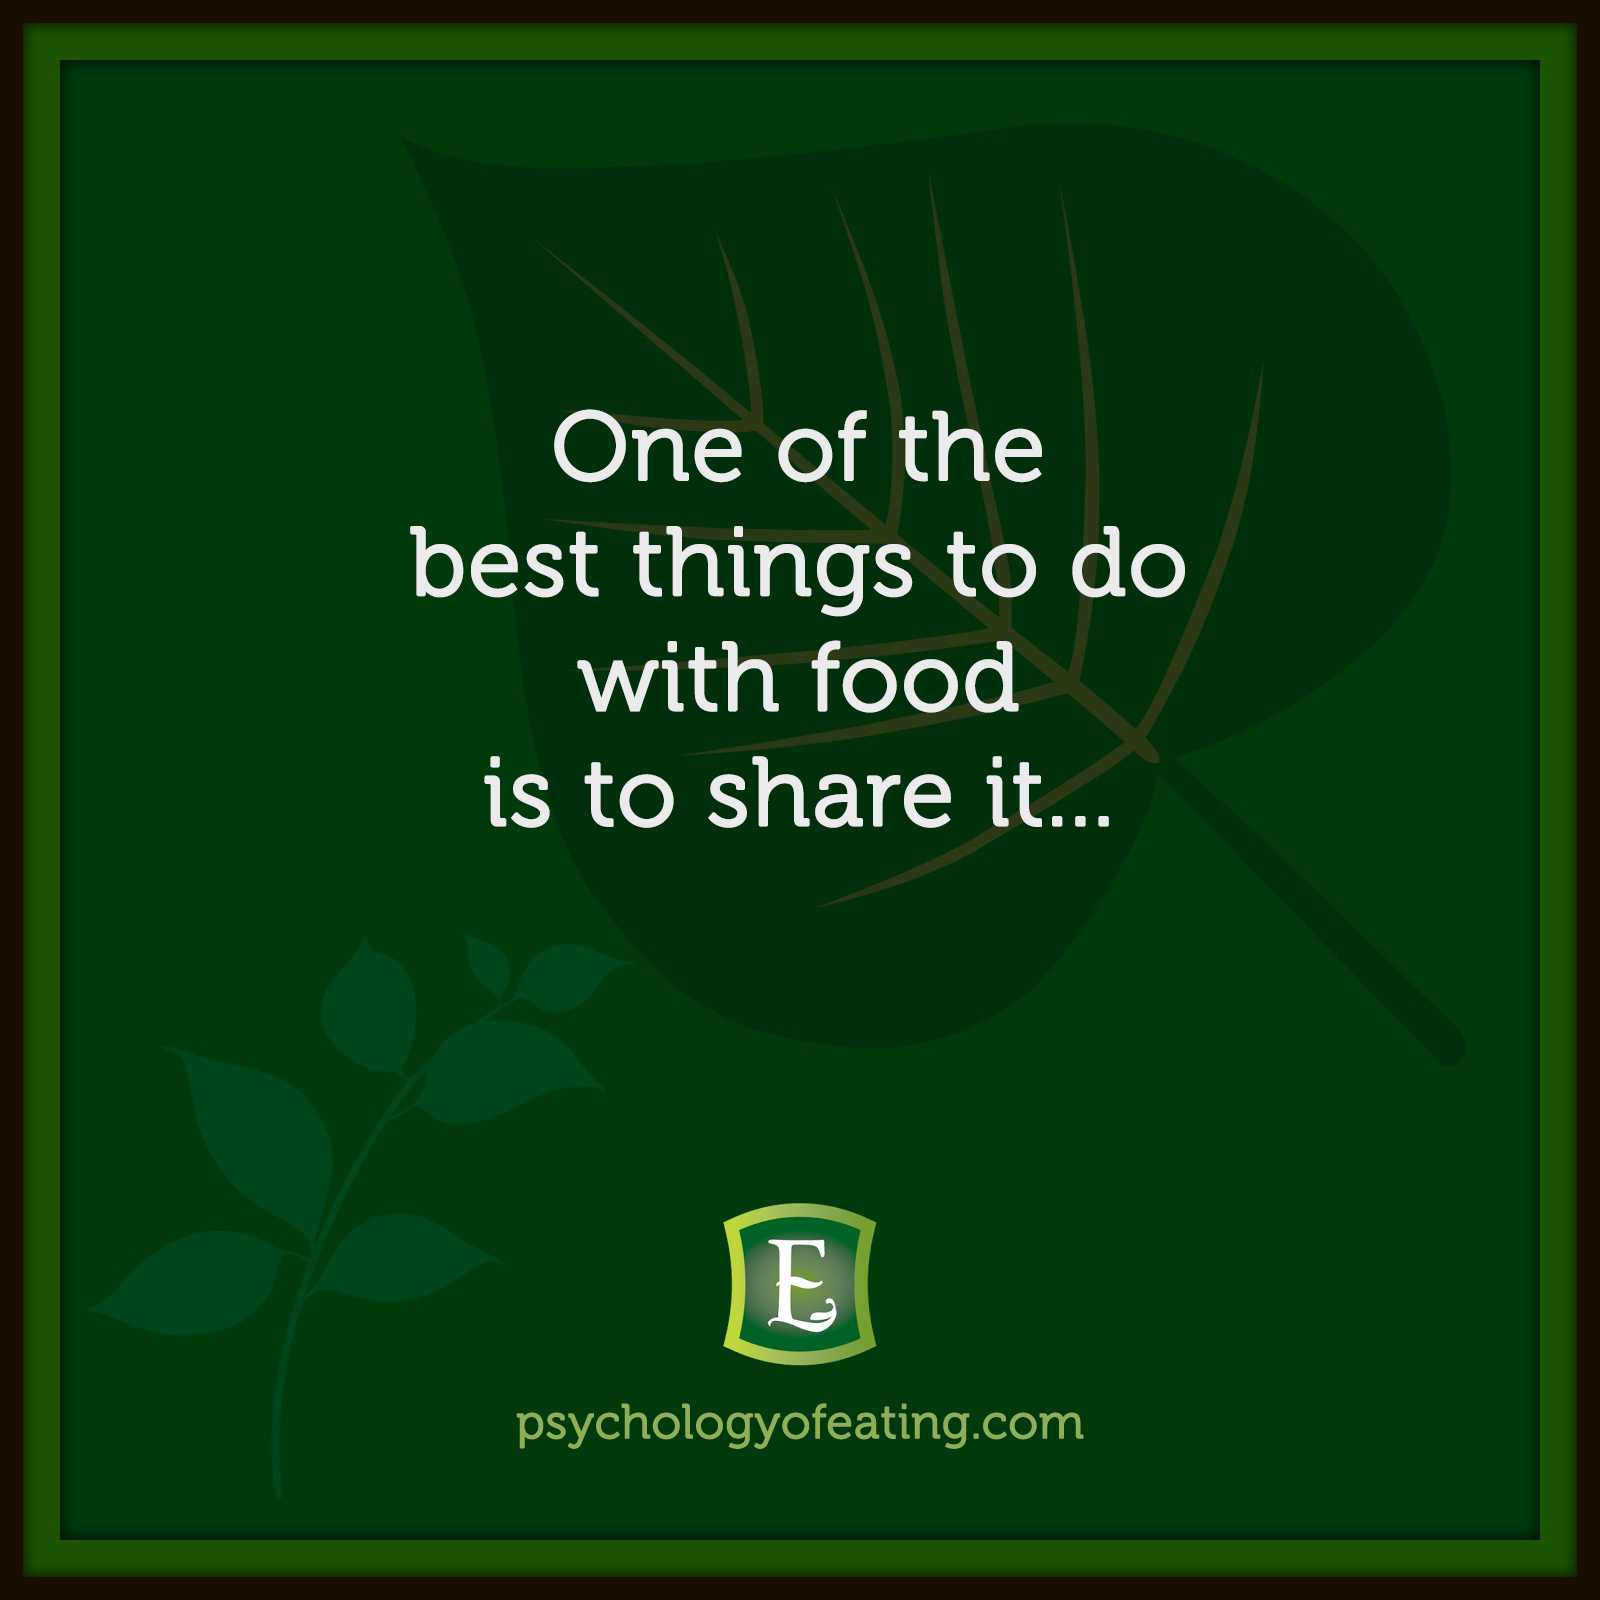 One of the best things to do with food is to share it… #health #nutrition #eatingpsychology #IPE